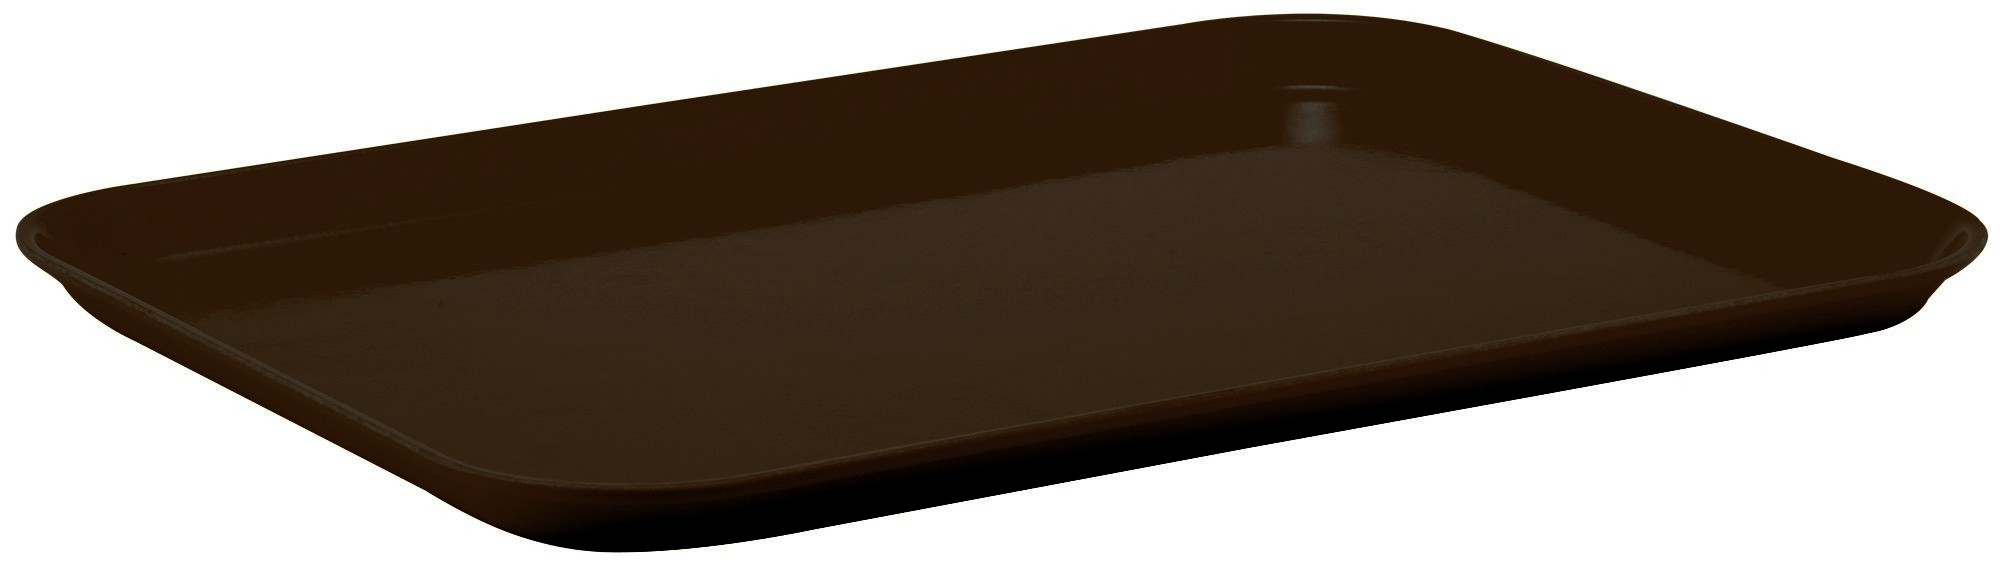 Winco FGT-1418B Fiberglass Rectangular Tray, Brown, 14quot; x 18quot;